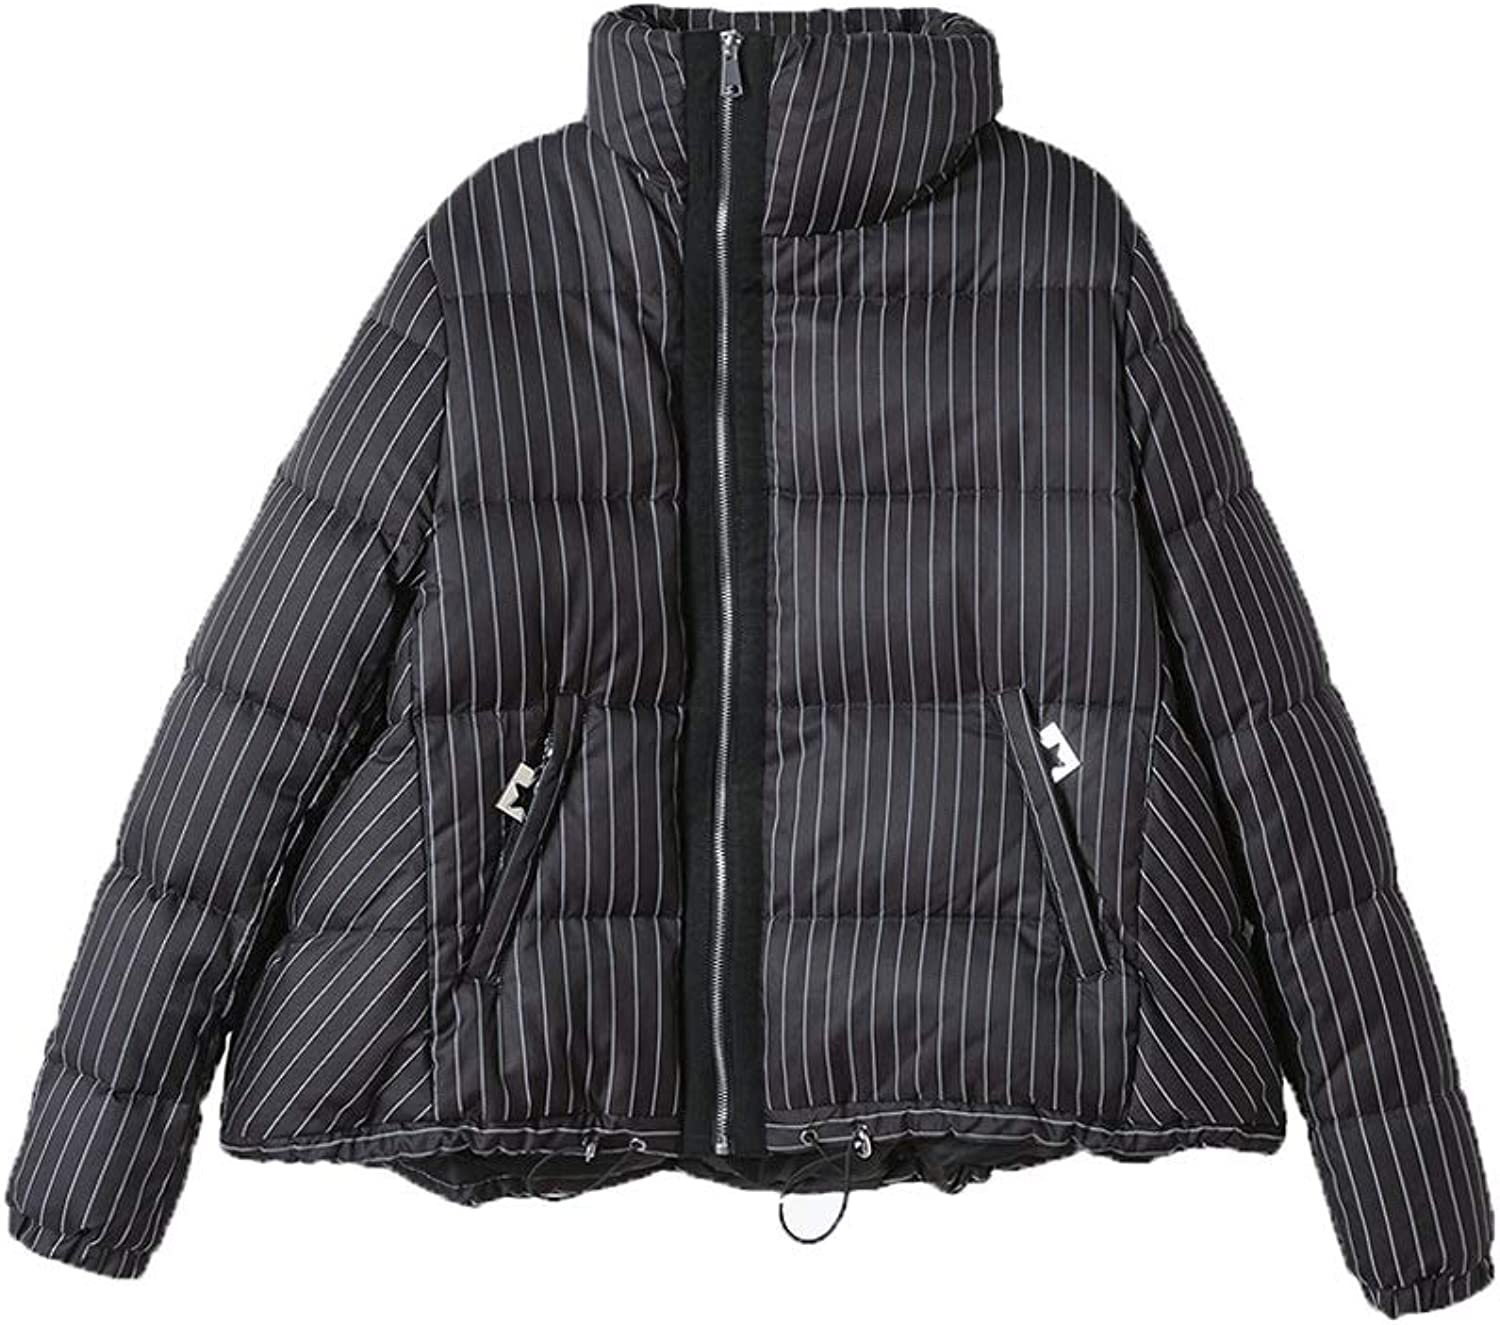 Women's Down Jacket Thick Short Jacket Literary Casual Striped Jacket Lapel Zipper Pocket Warm Ladies Jacket (Black) (Size   M)